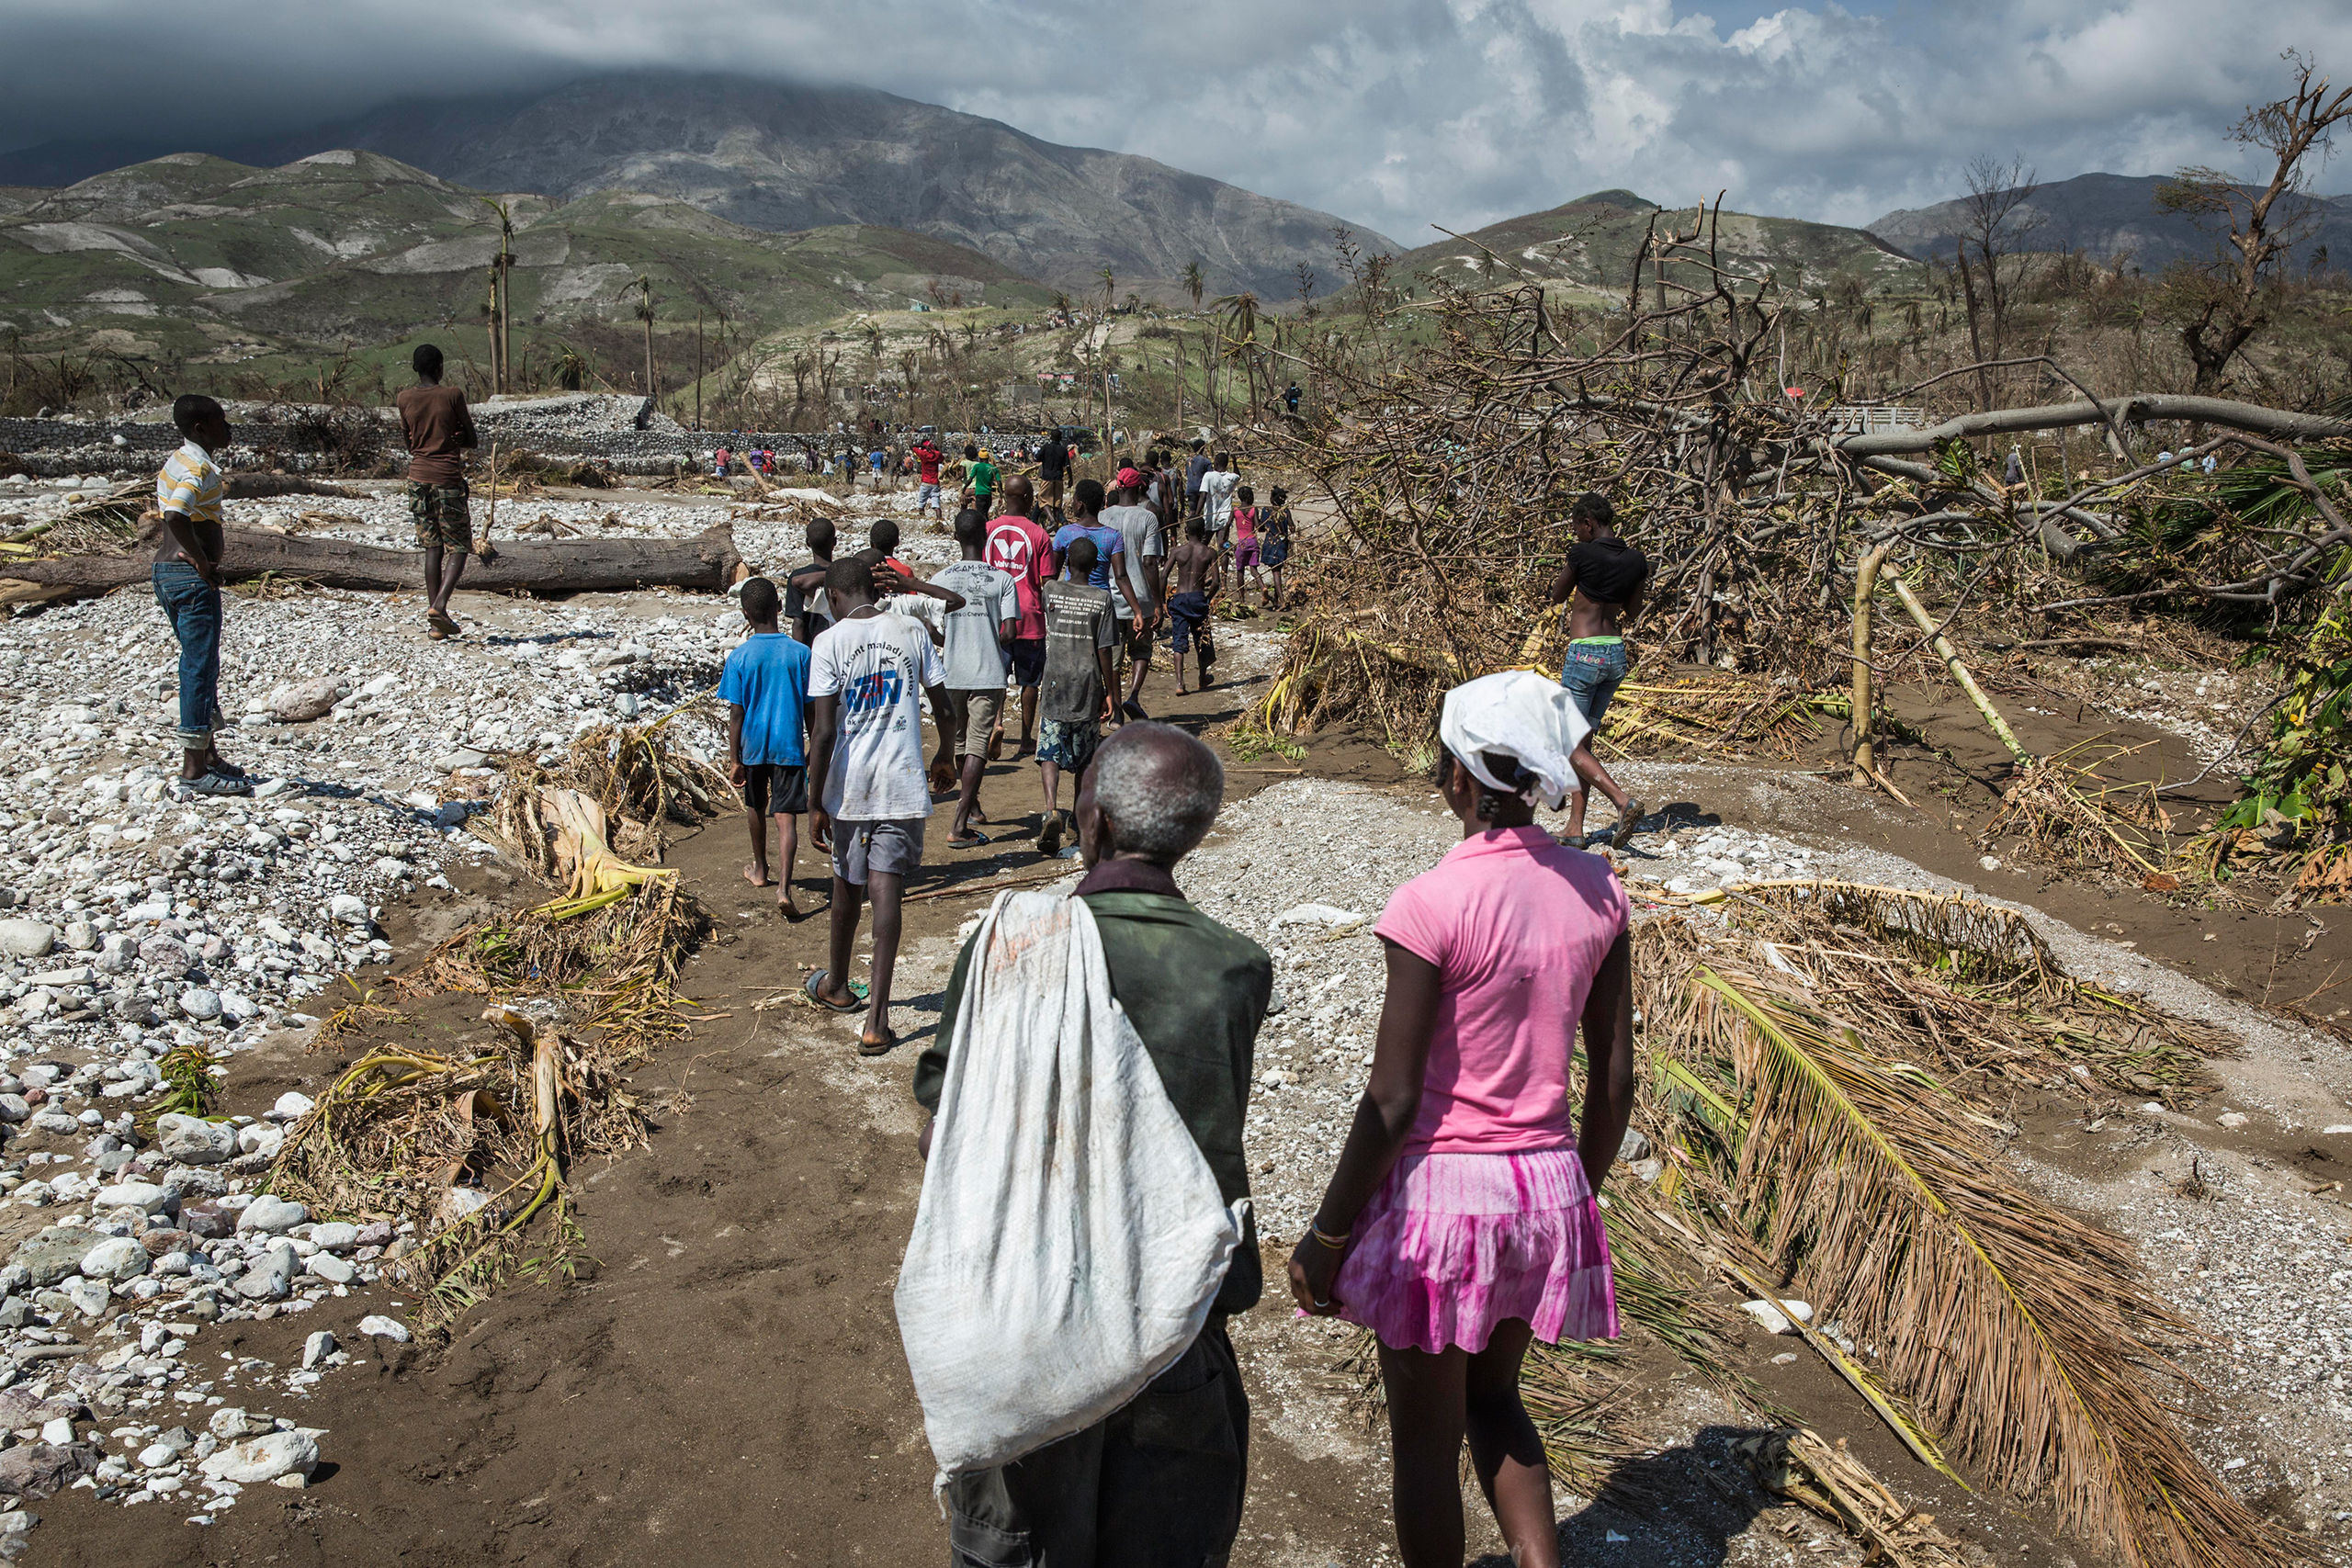 People walk along a path to the river in order to cross through the water on foot as the bridge has collapsed in Roche-a-Bateau, southwestern Haiti, on Oct. 8, 2016. Many Haitians originally from the south of the country are returning home to visit family and help in the recovery from the impact of Hurricane Matthew.